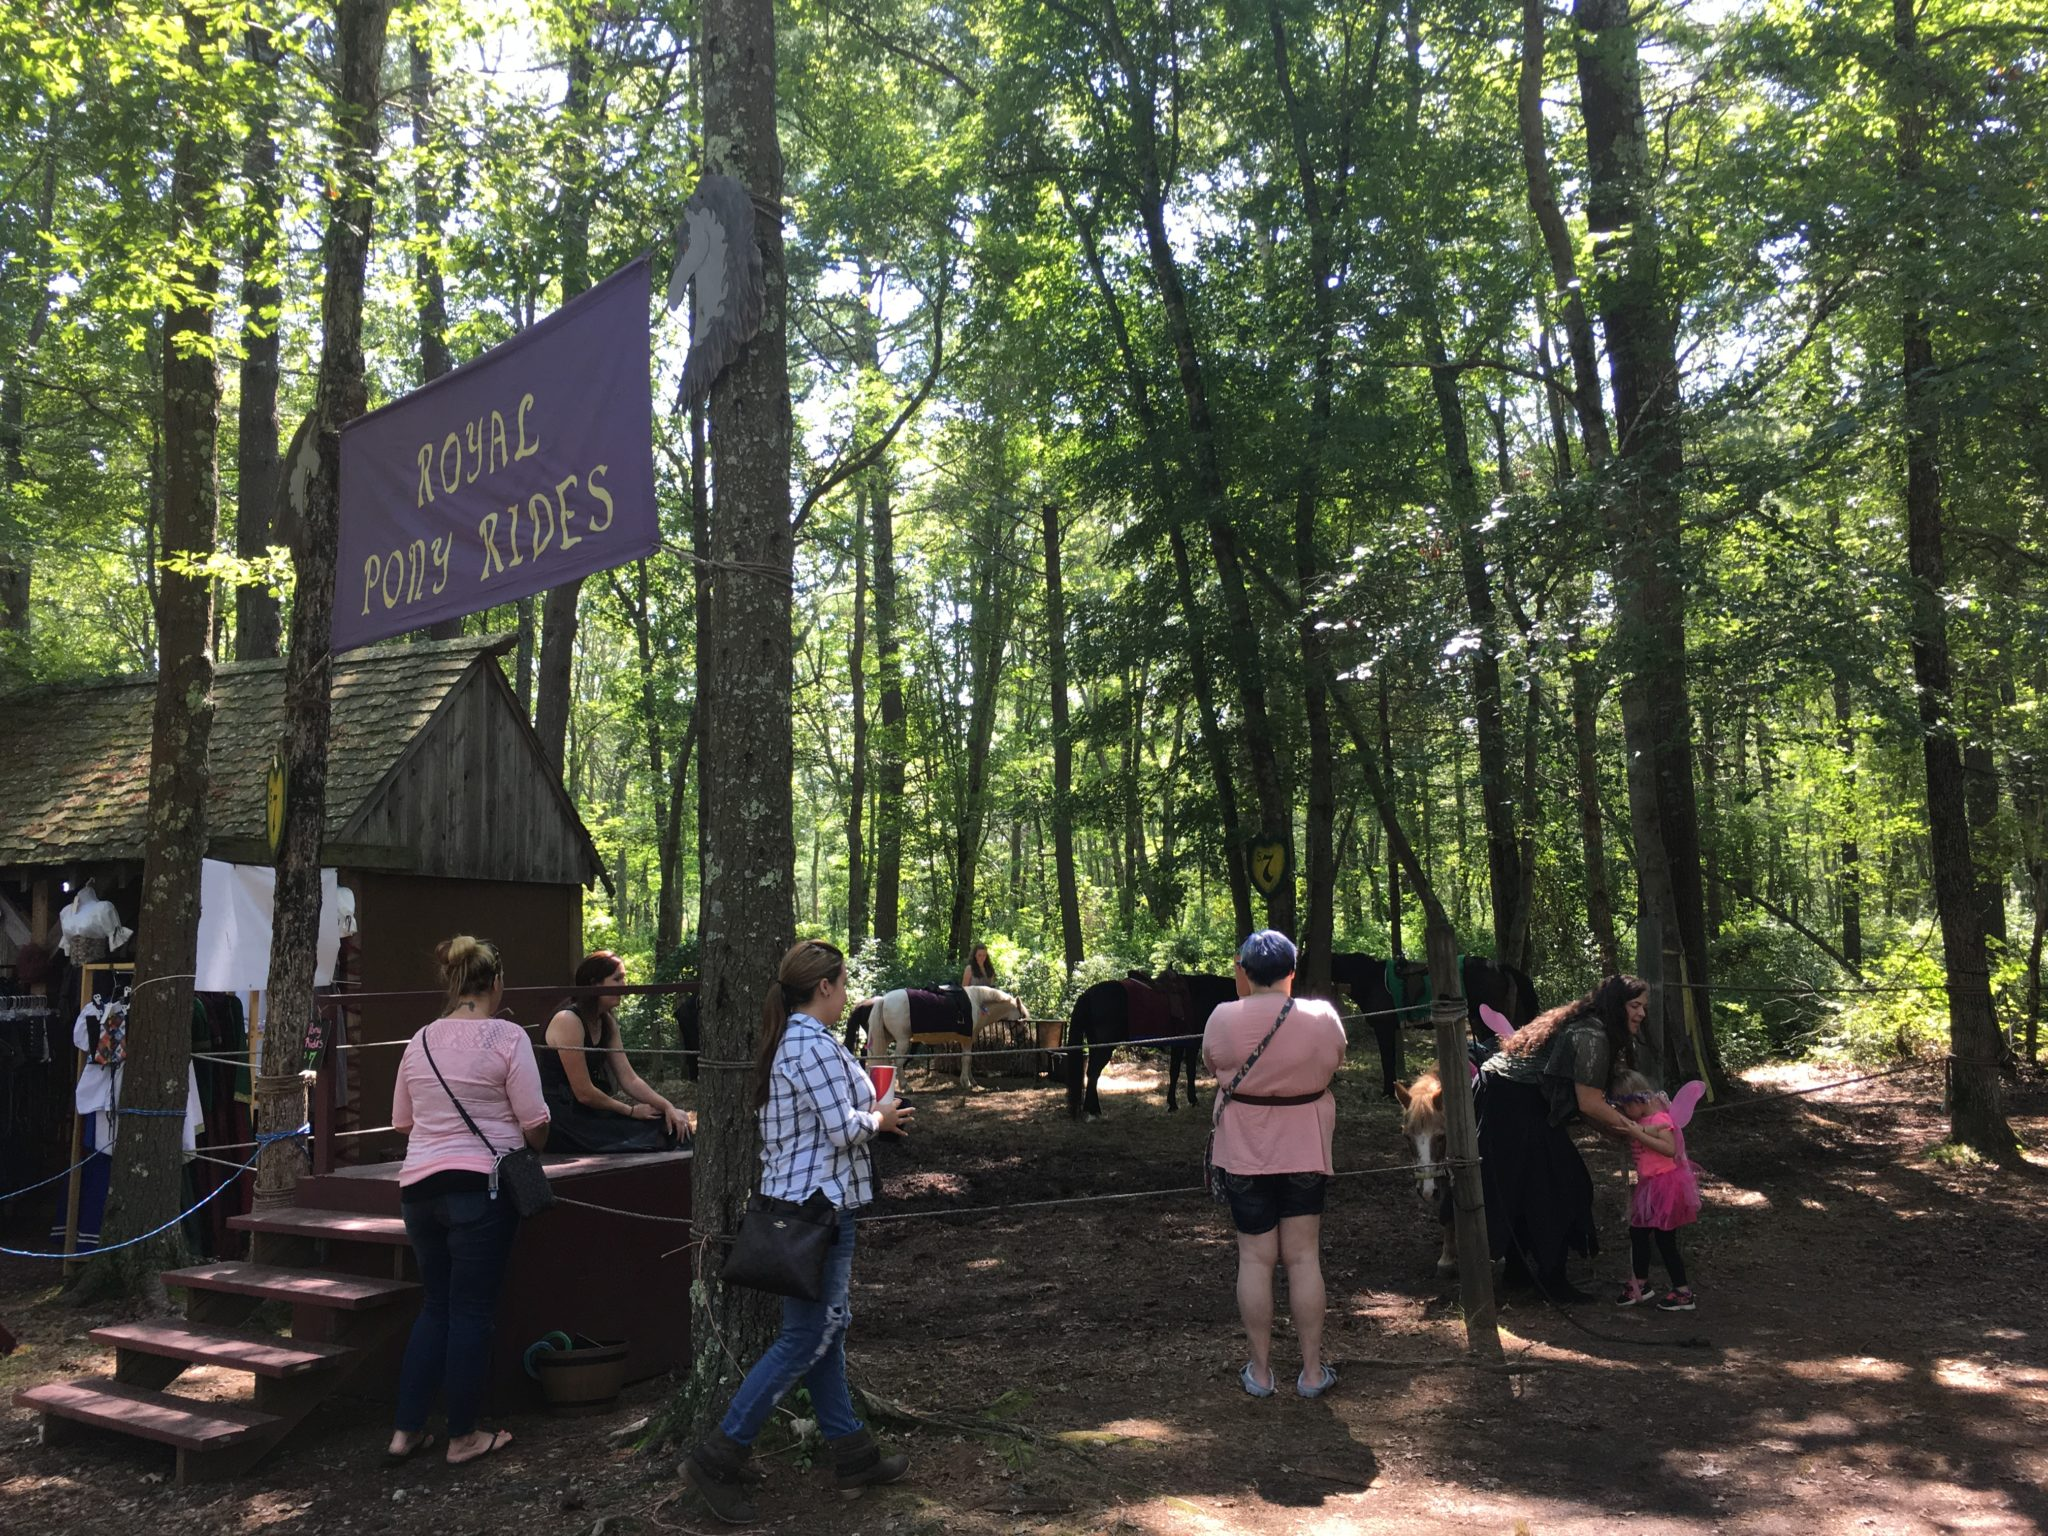 Pony rides are available at King Richard's Faire!